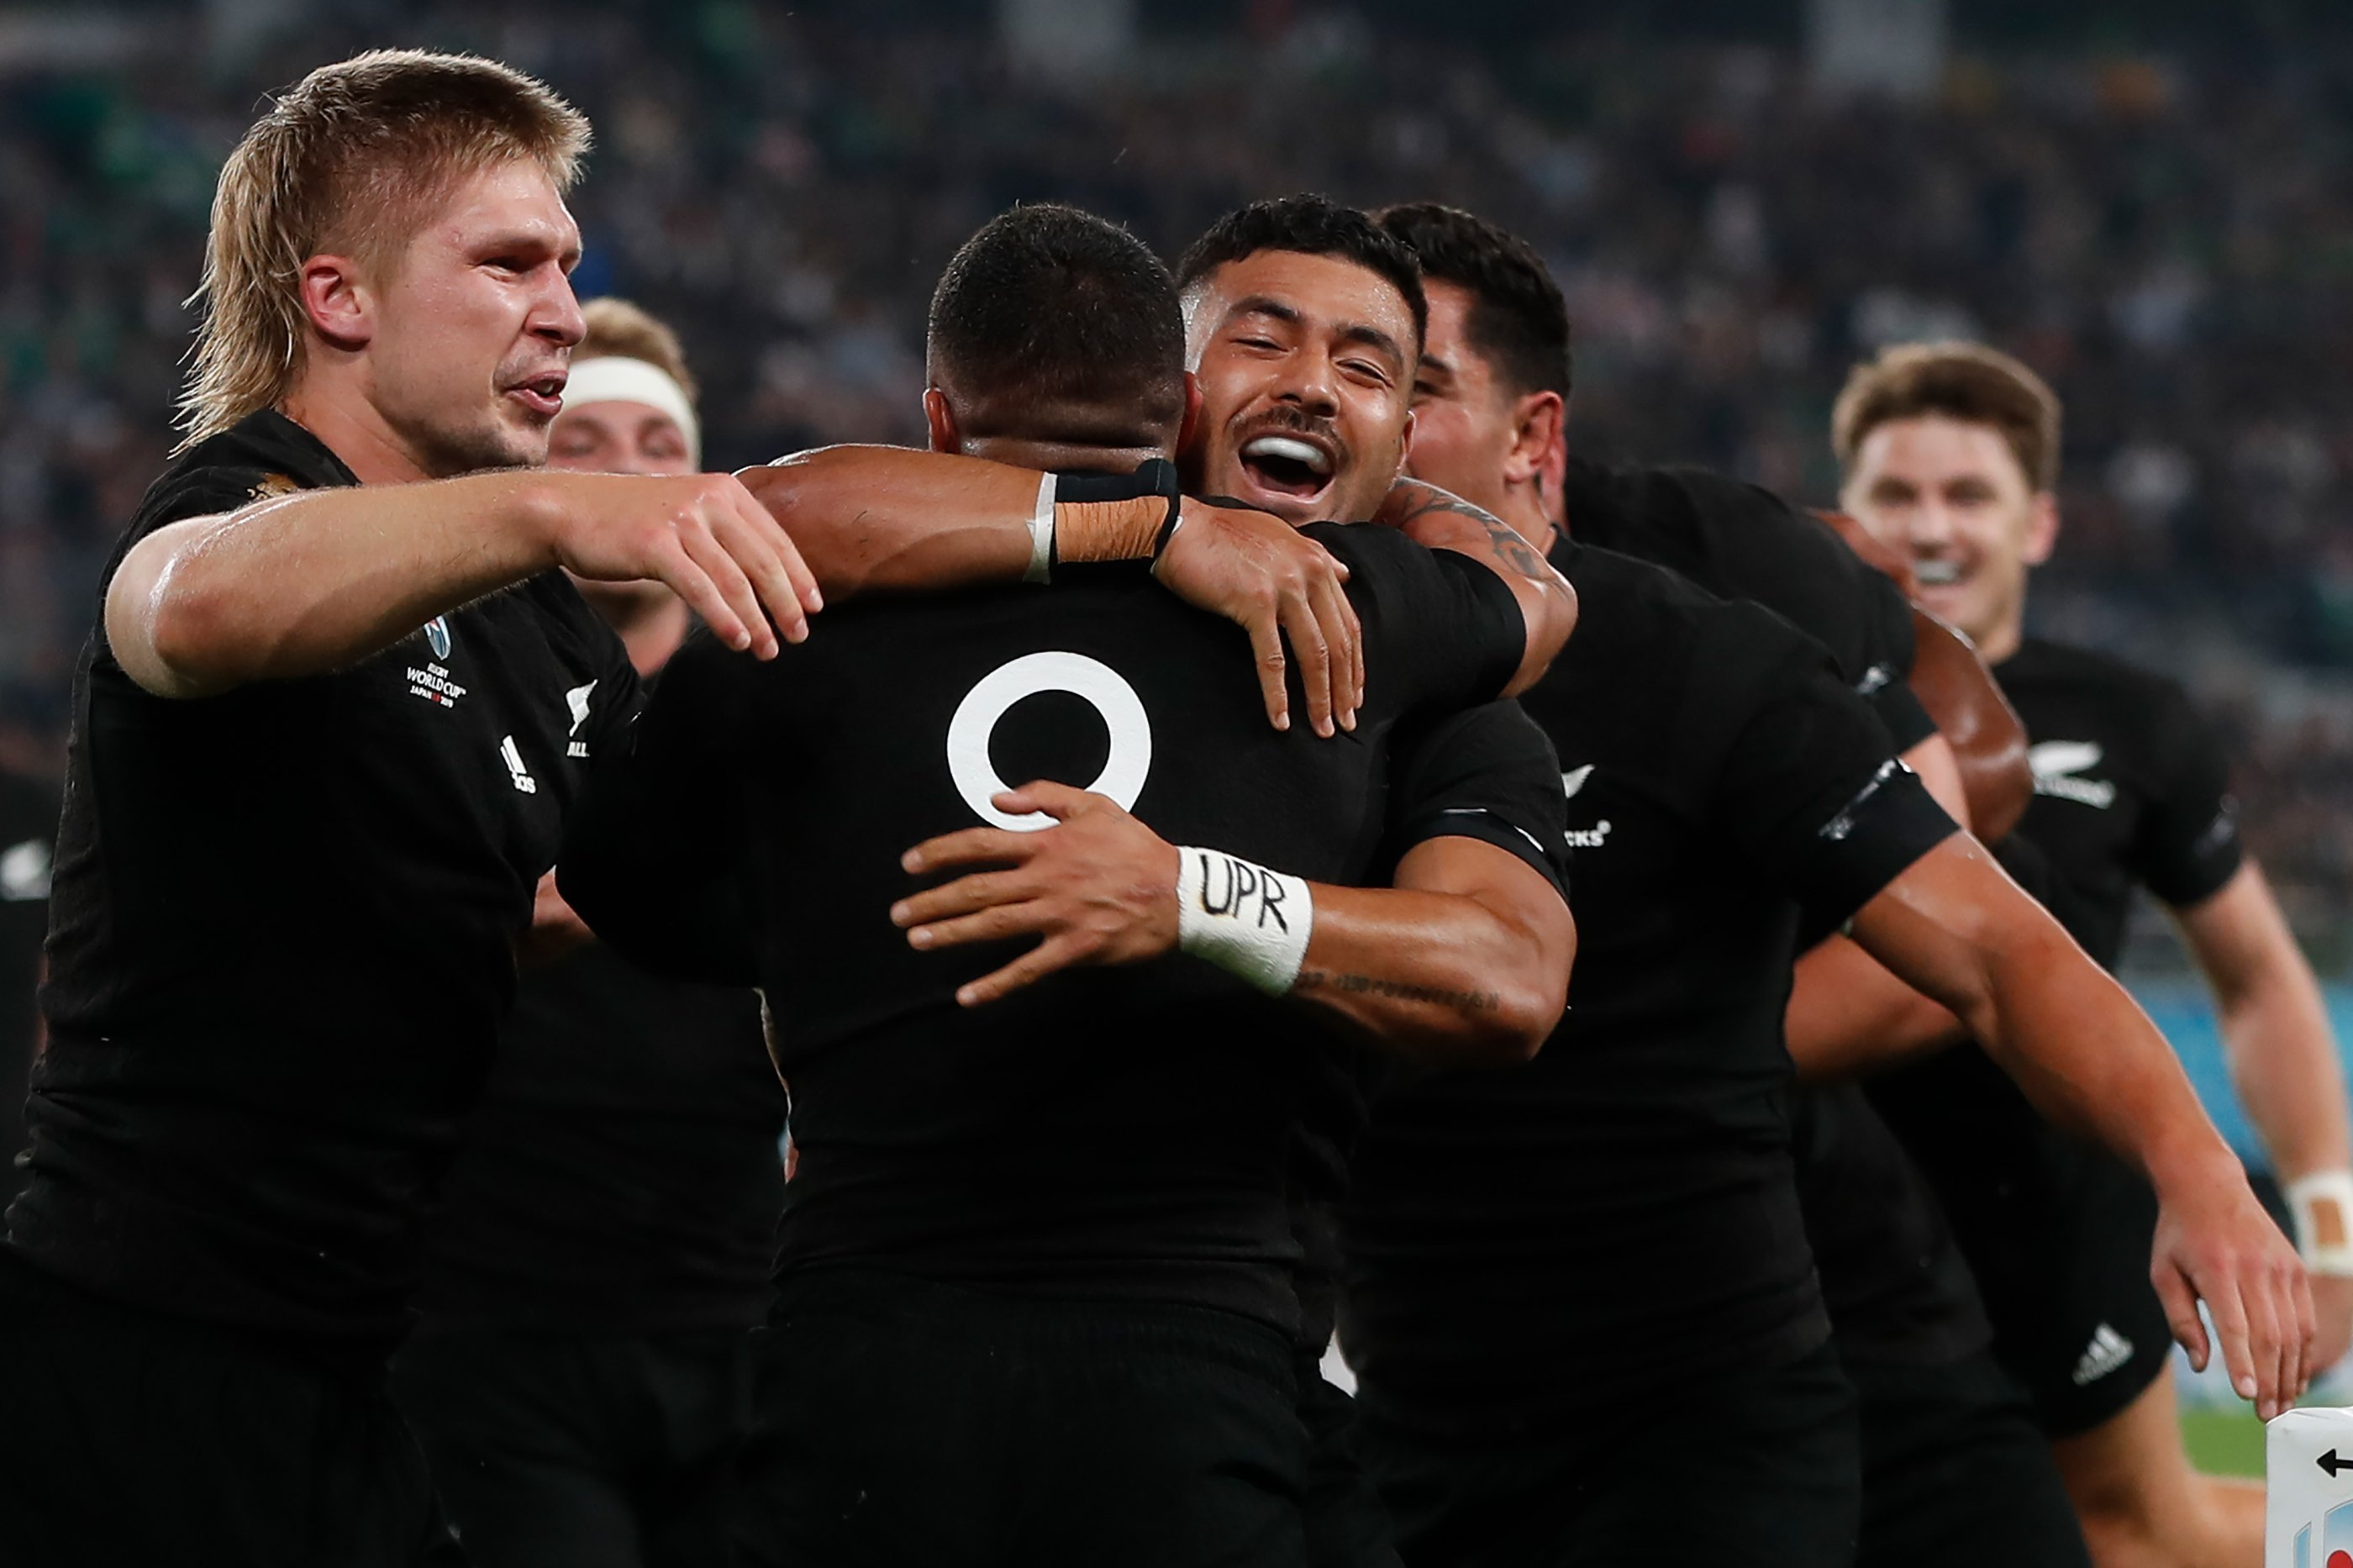 All Blacks reach Rugby World Cup semifinals with seven-try demolition of Ireland